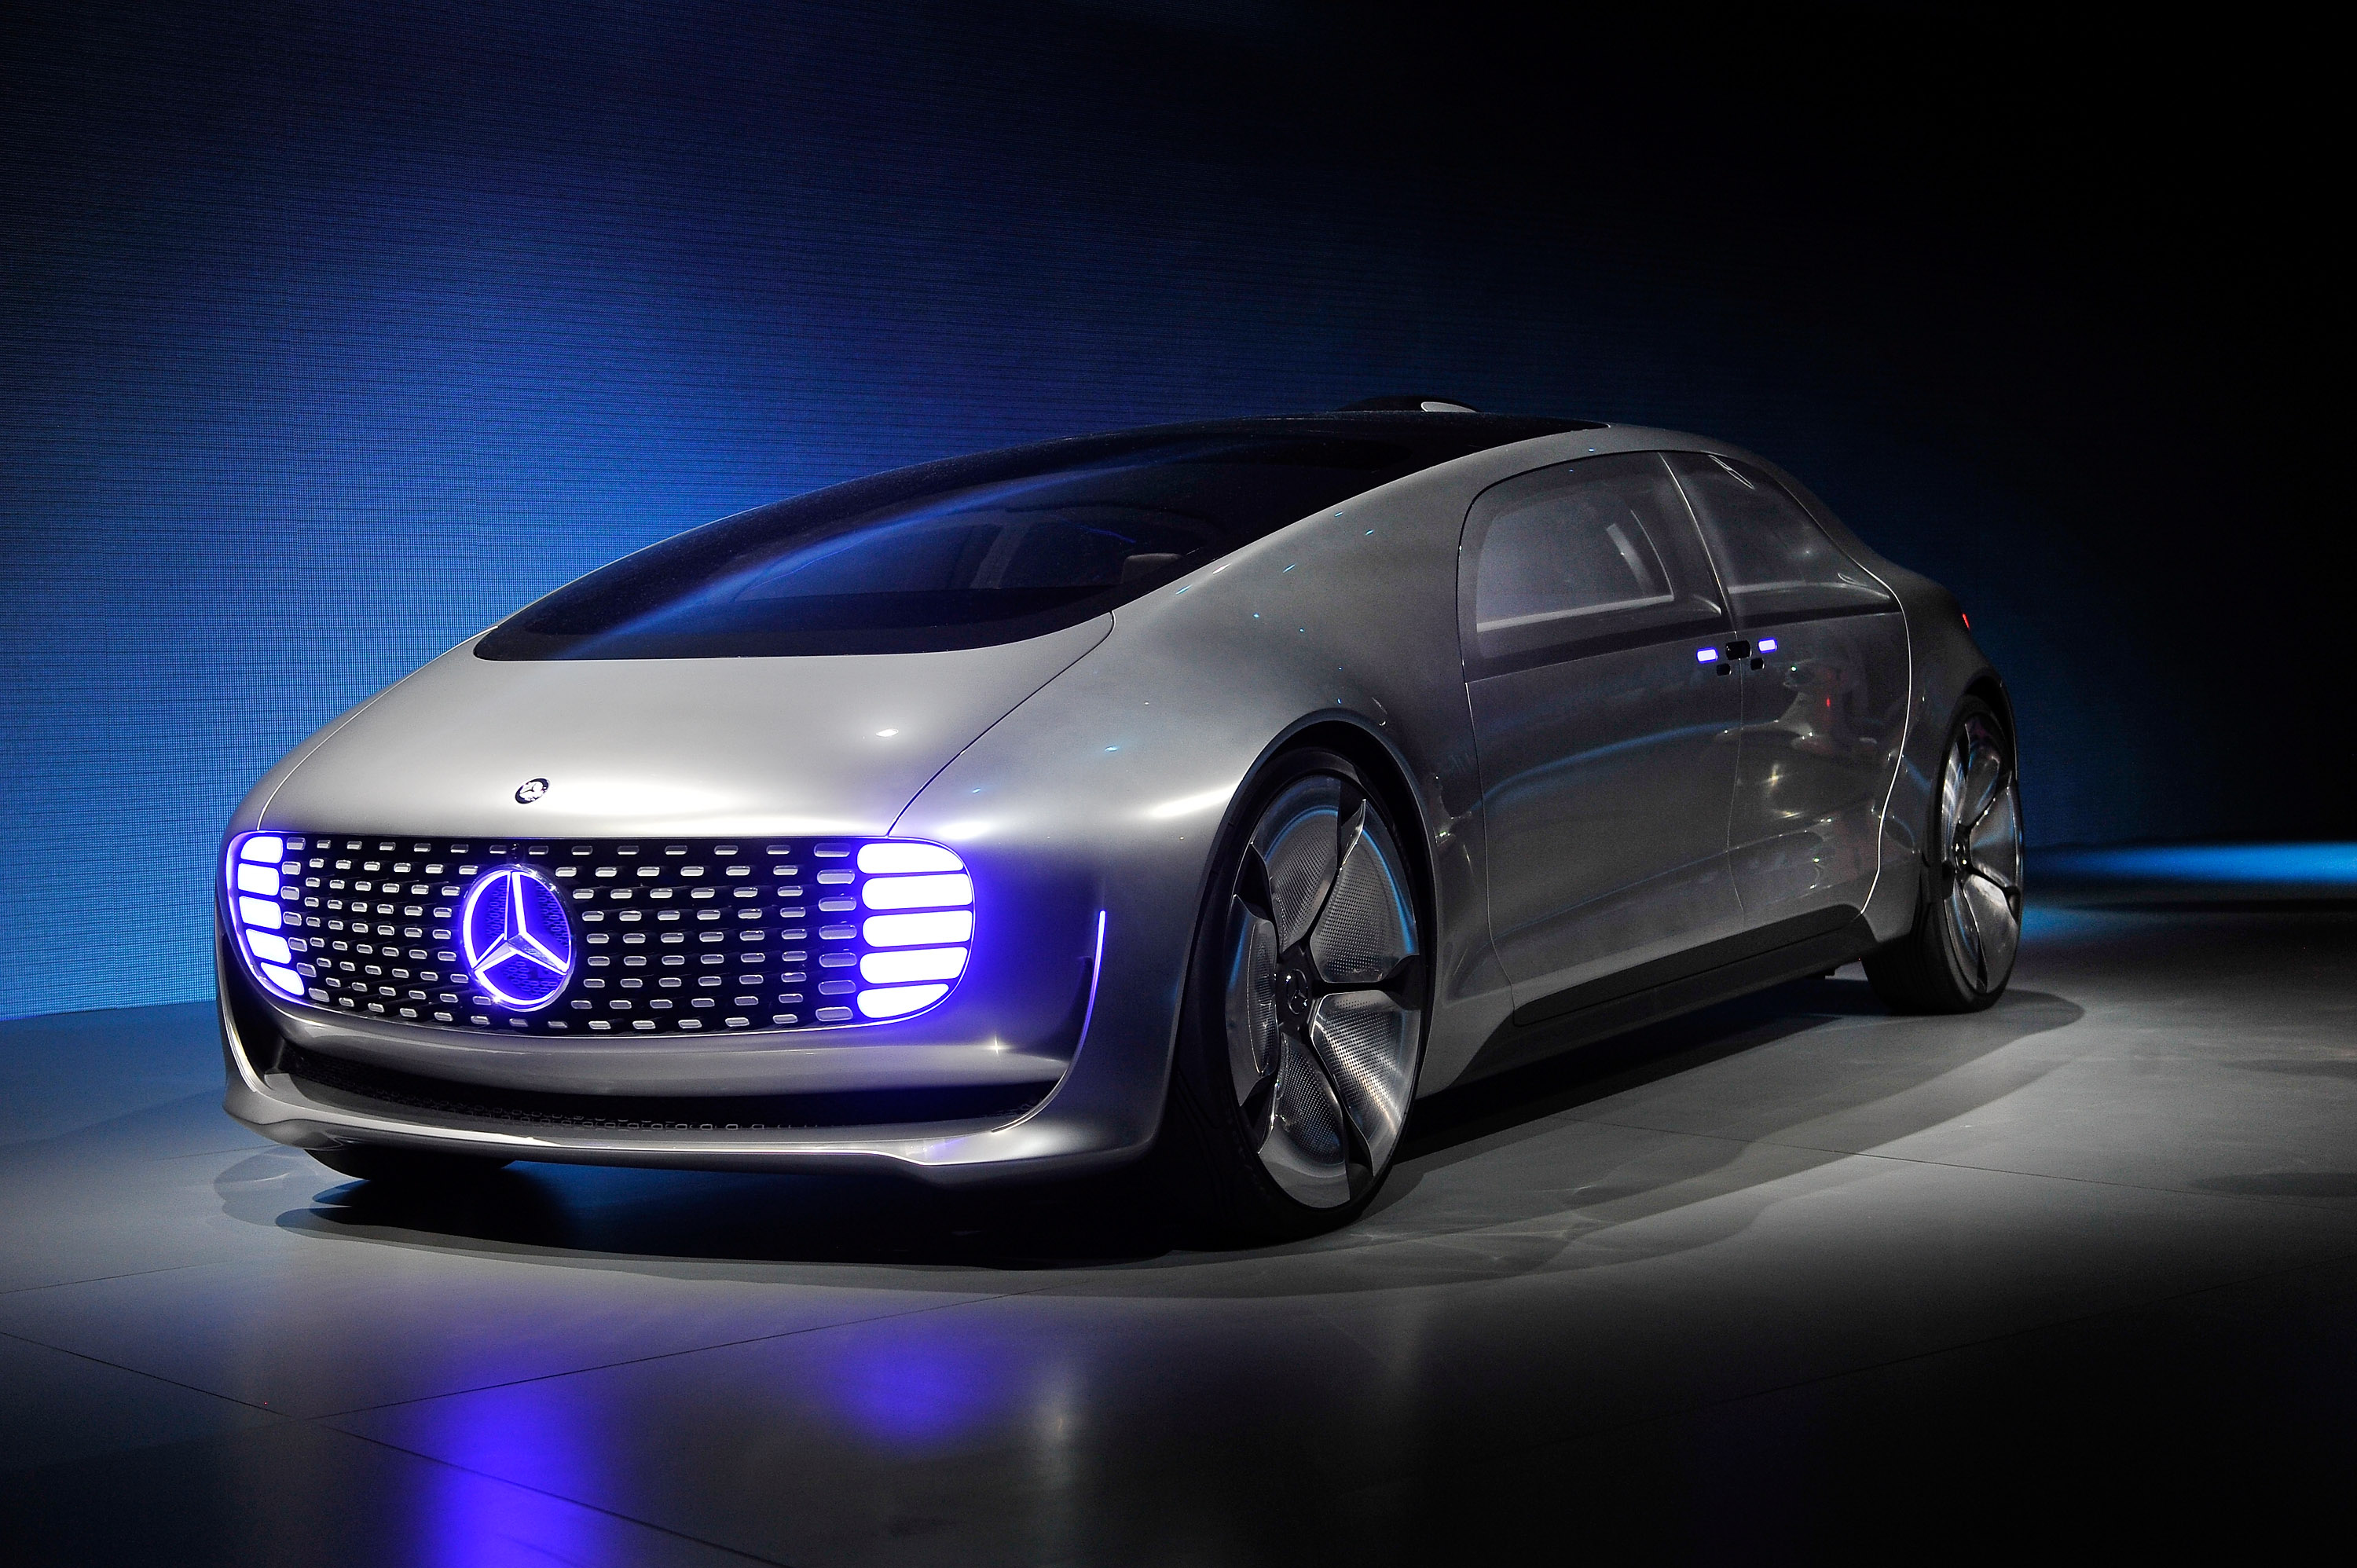 A Mercedes-Benz  F 015 autonomous driving automobile is displayed at the Mercedes-Benz press event at The Chelsea at The Cosmopolitan of Las Vegas for the 2015 International CES on January 5, 2015 in Las Vegas, Nevada.